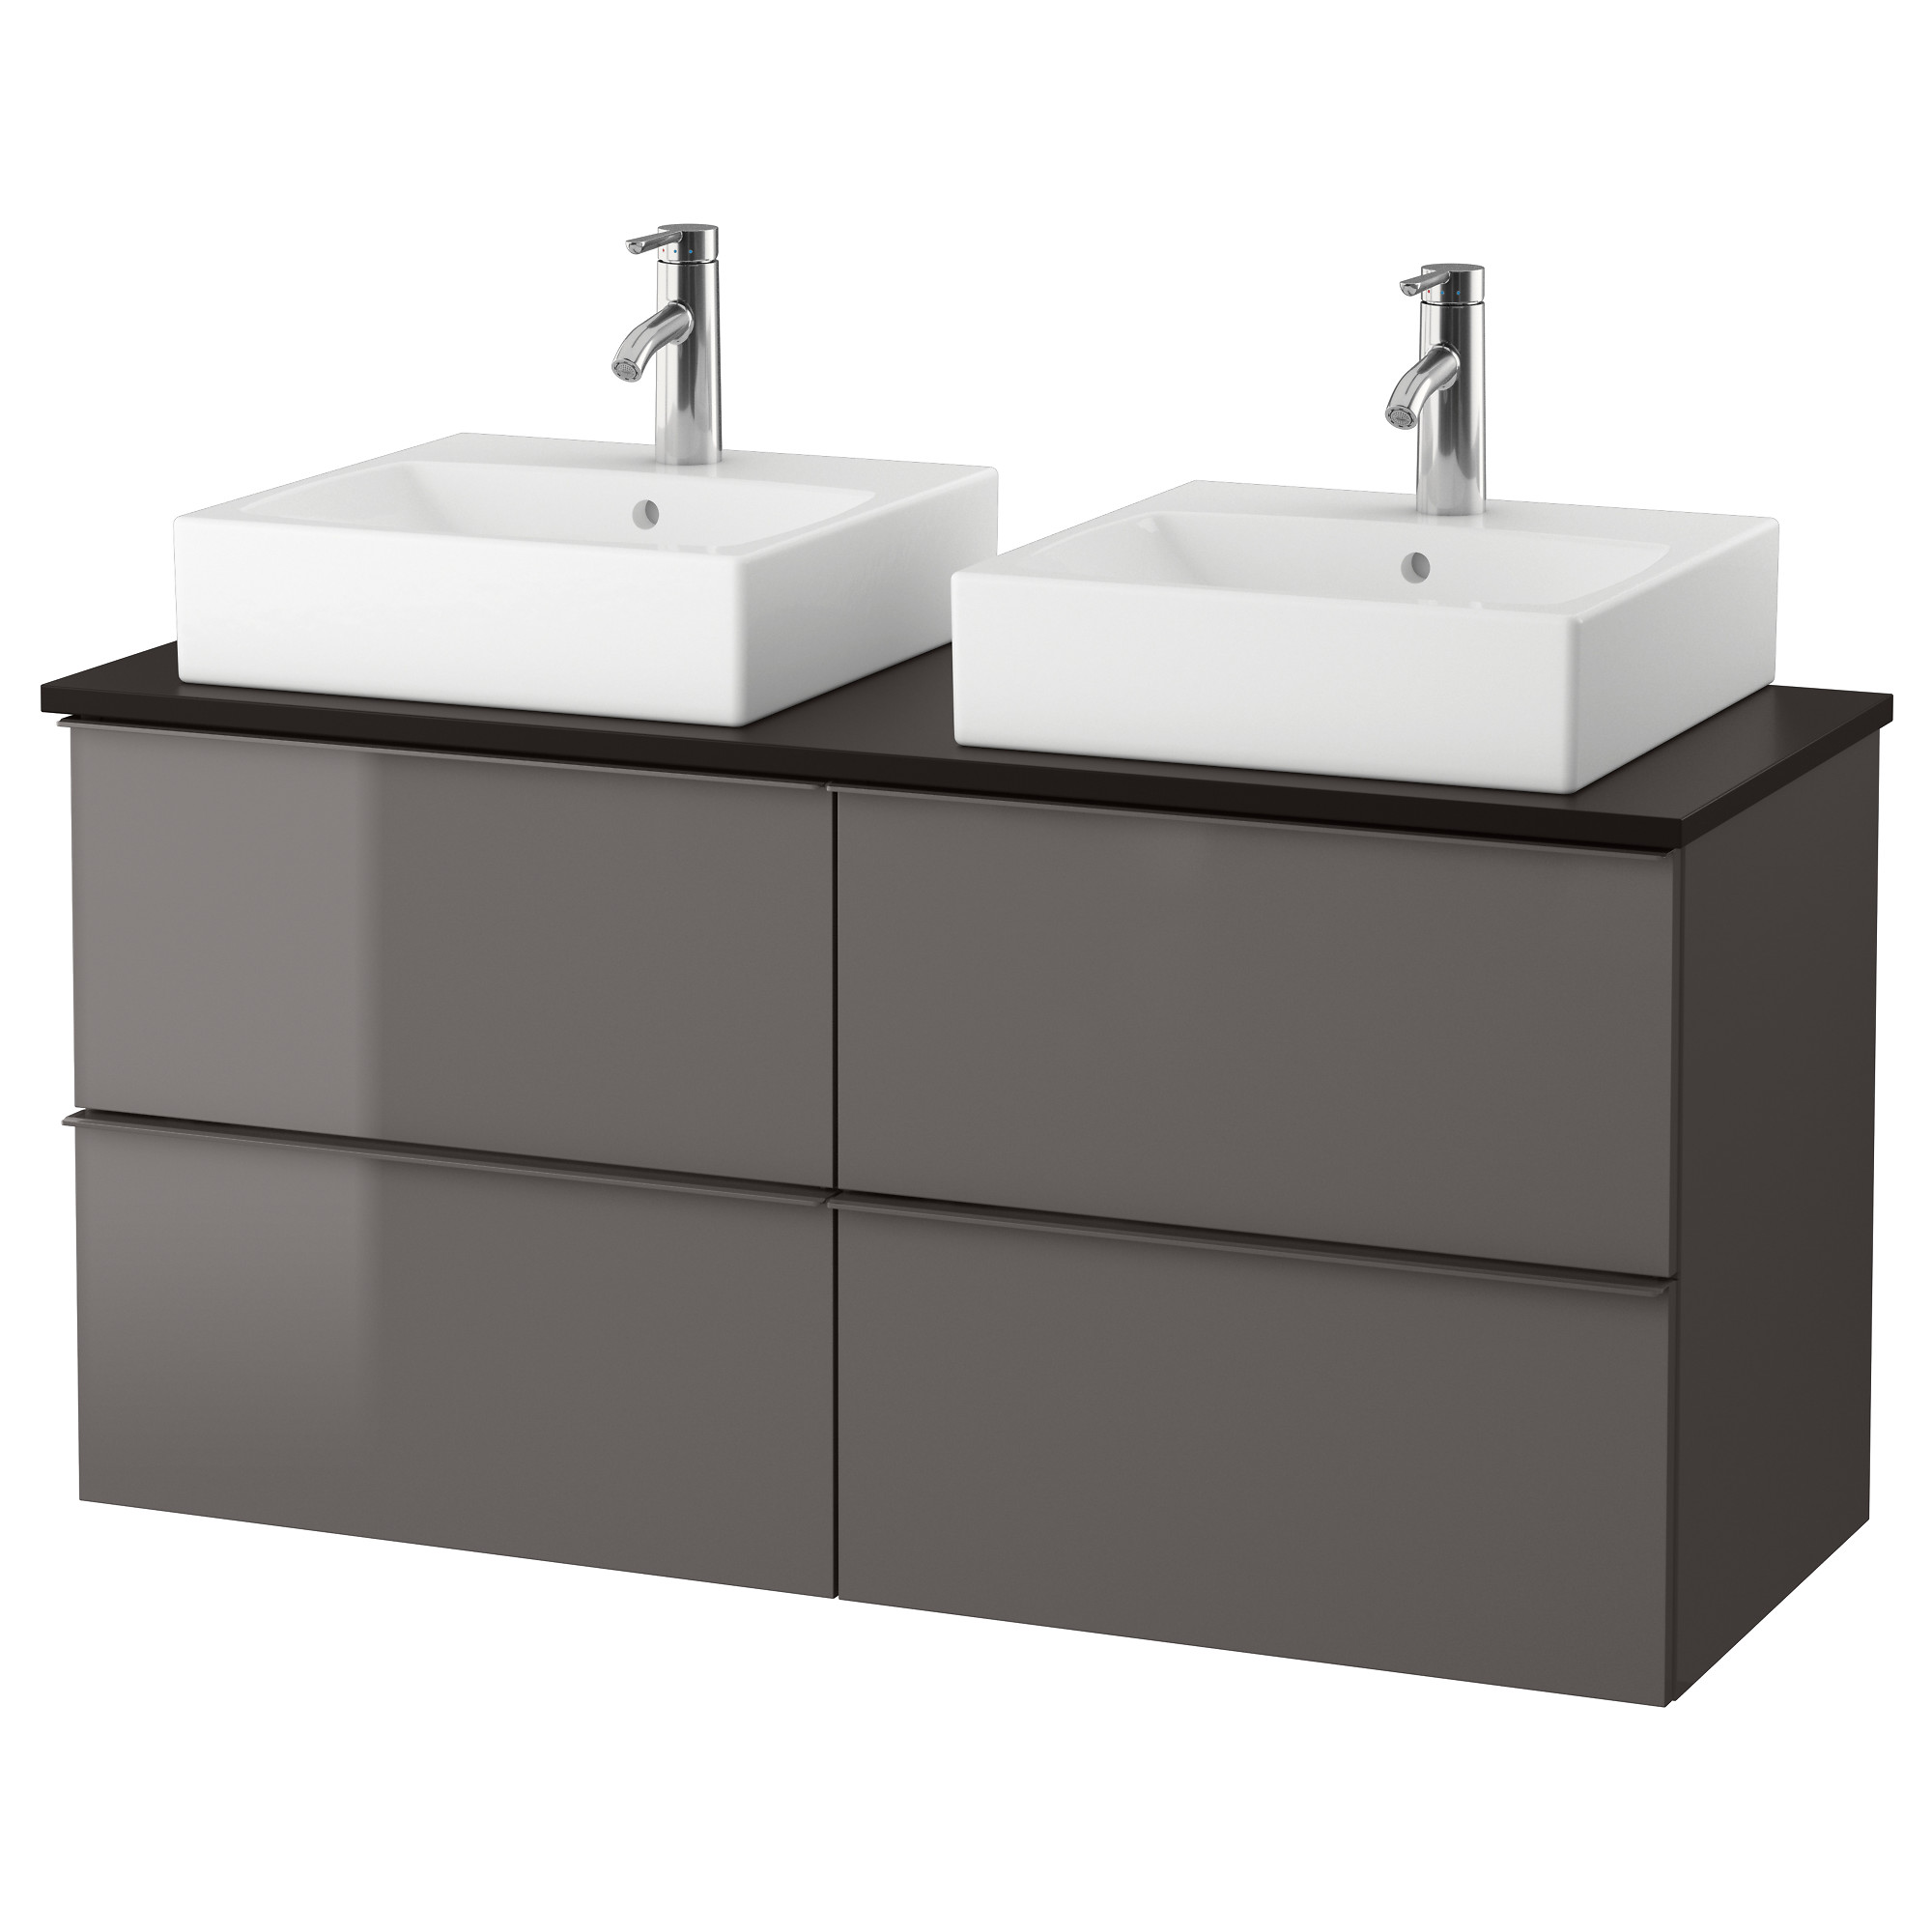 Sink And Cabinet For Bathroom Weifeng Furniture